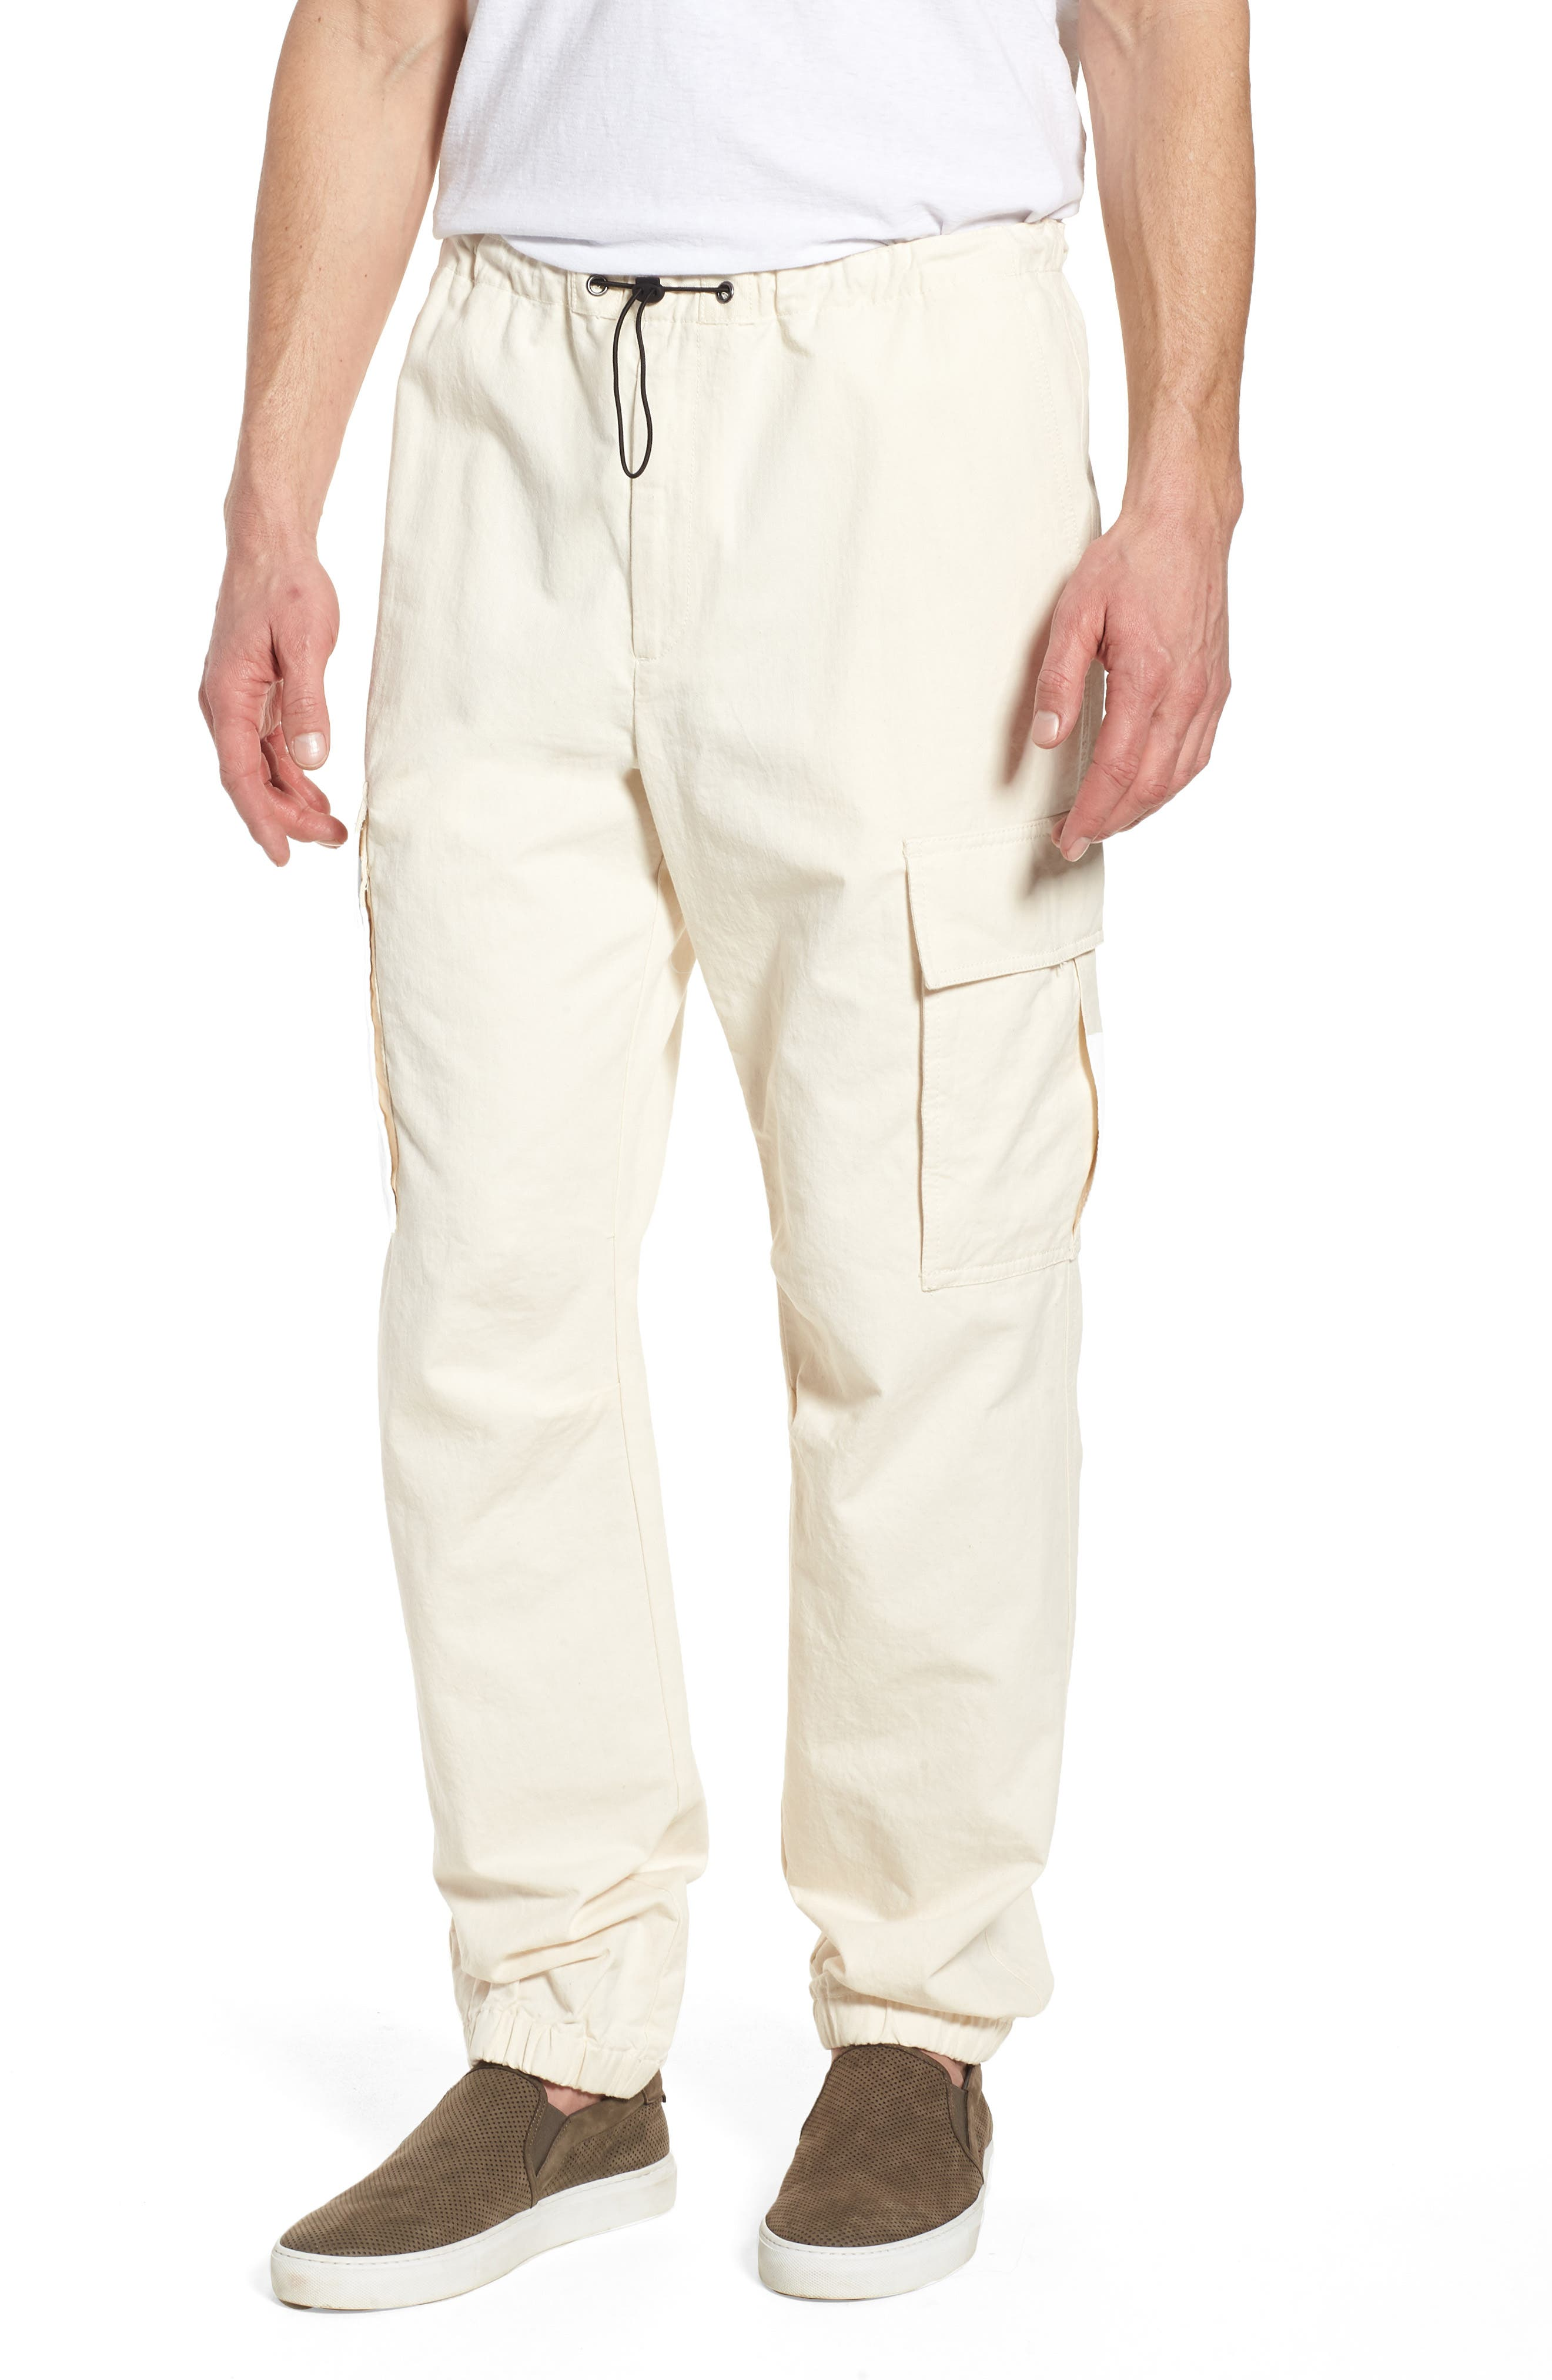 JAMES PERSE,                             Cargo Pants,                             Main thumbnail 1, color,                             IVORY